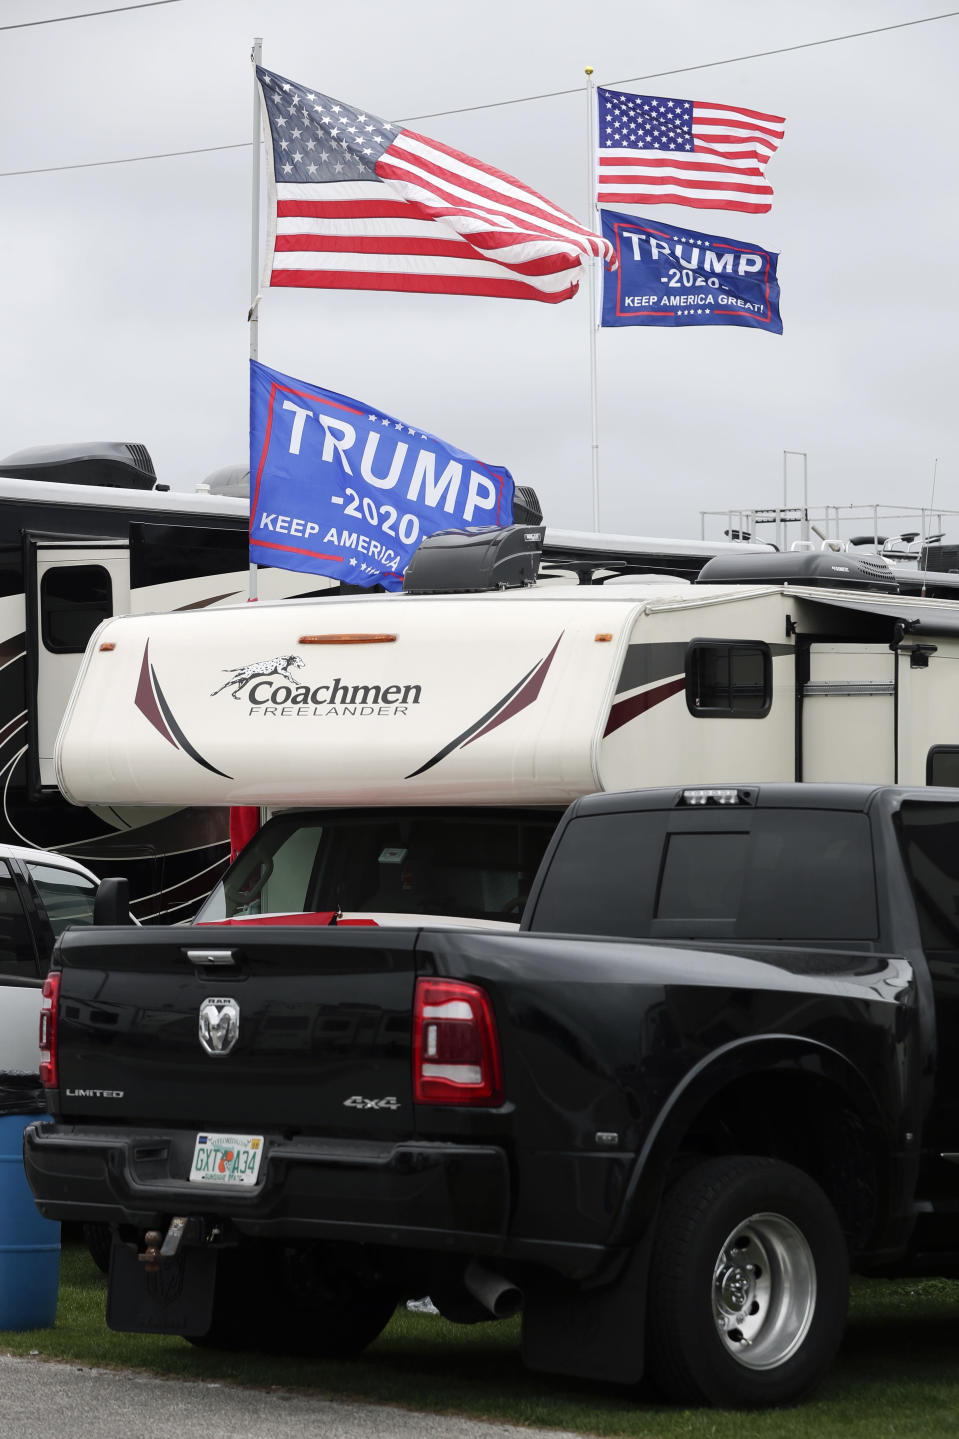 Flags supporting President Donald Trump fly in the infield days before his appearance at the NASCAR Daytona 500 auto race at Daytona International Speedway, Friday, Feb. 14, 2020, in Daytona Beach, Fla. Trump will find Daytona International Speedway as welcoming as one of his campaign rallies. (AP Photo/John Raoux)